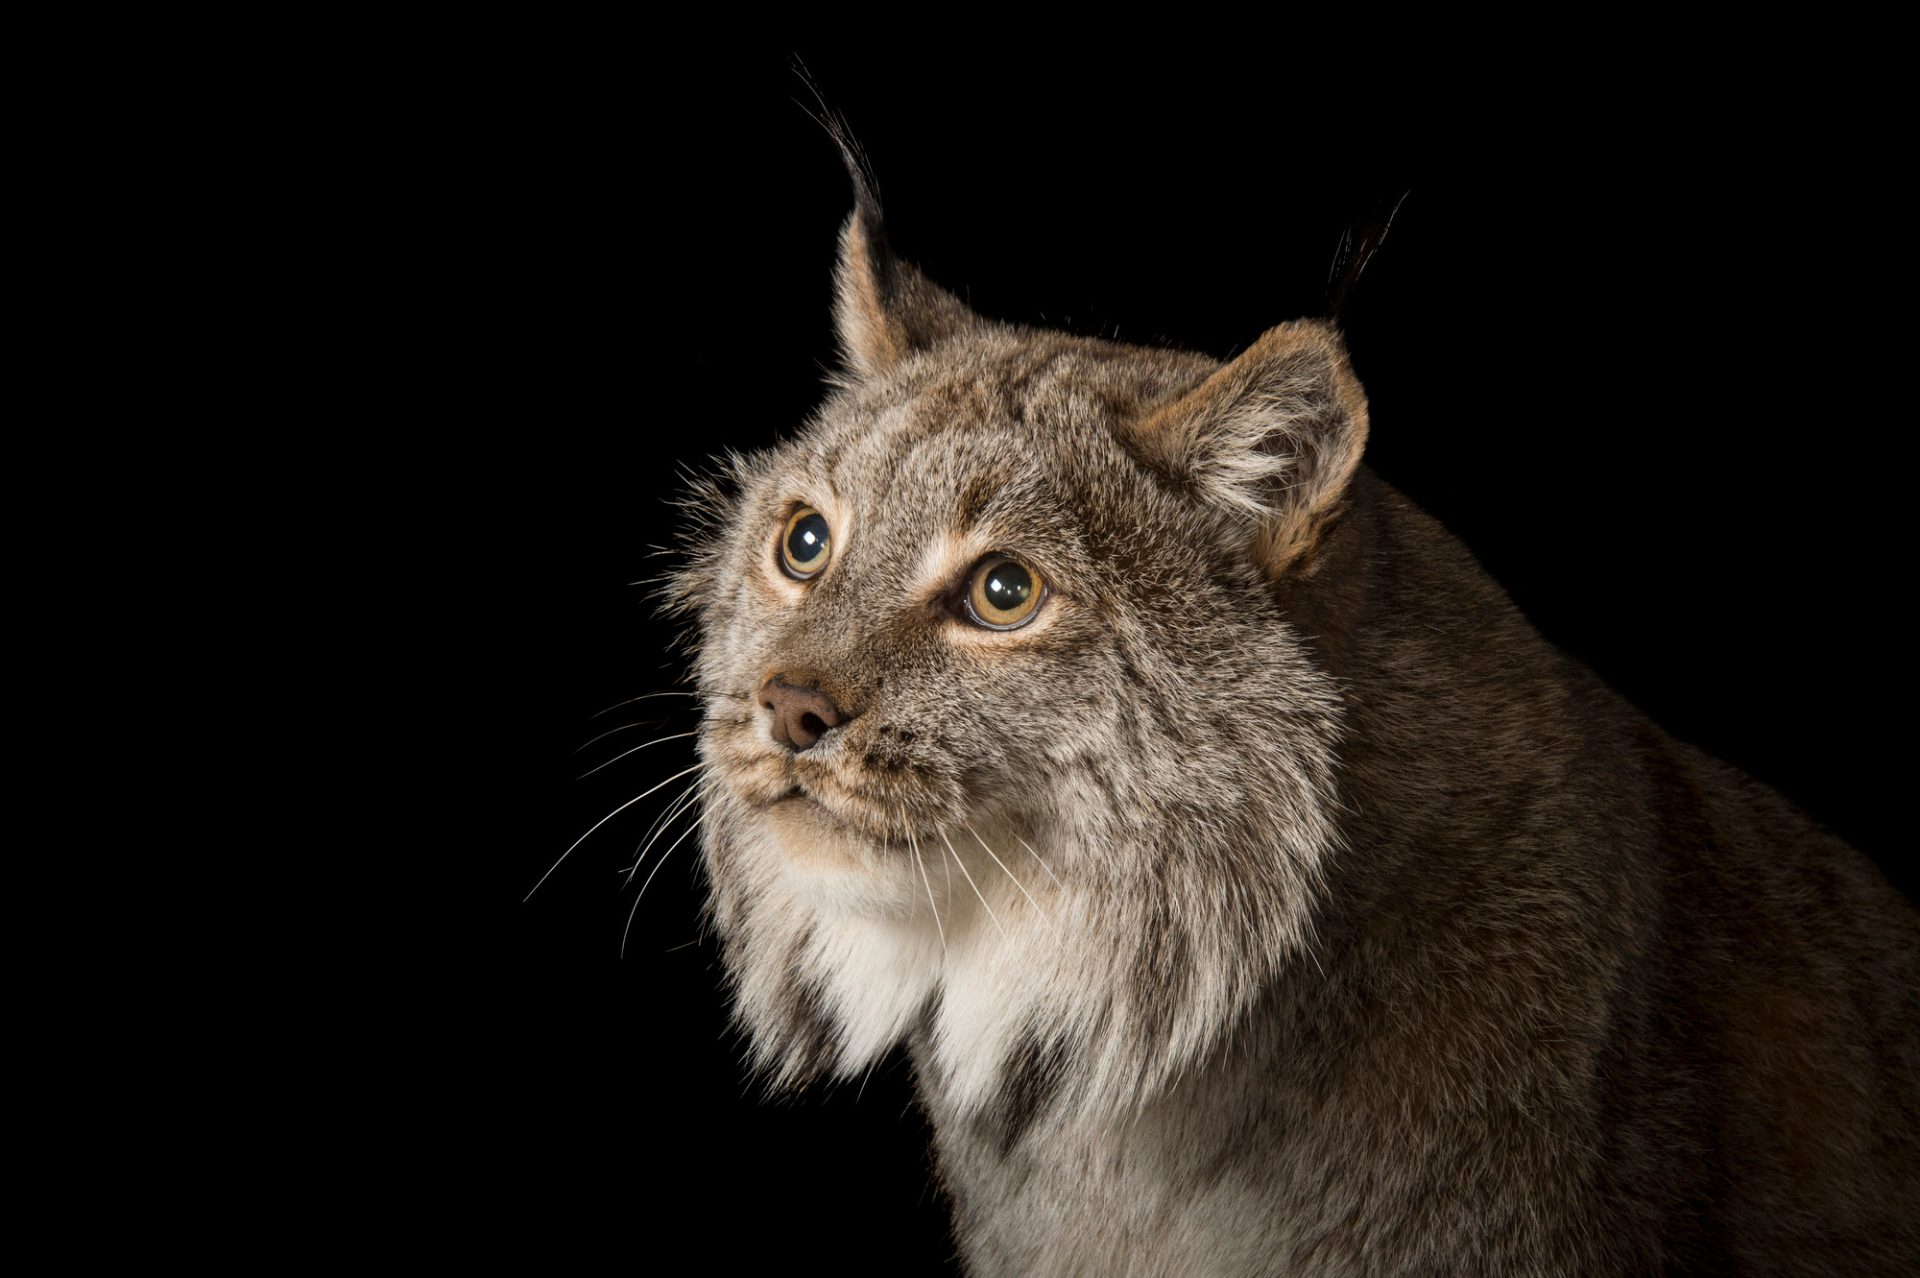 Picture of a federally threatened, Canada lynx (Lynx canadensis) named Yukon at the Cincinnati Zoo.